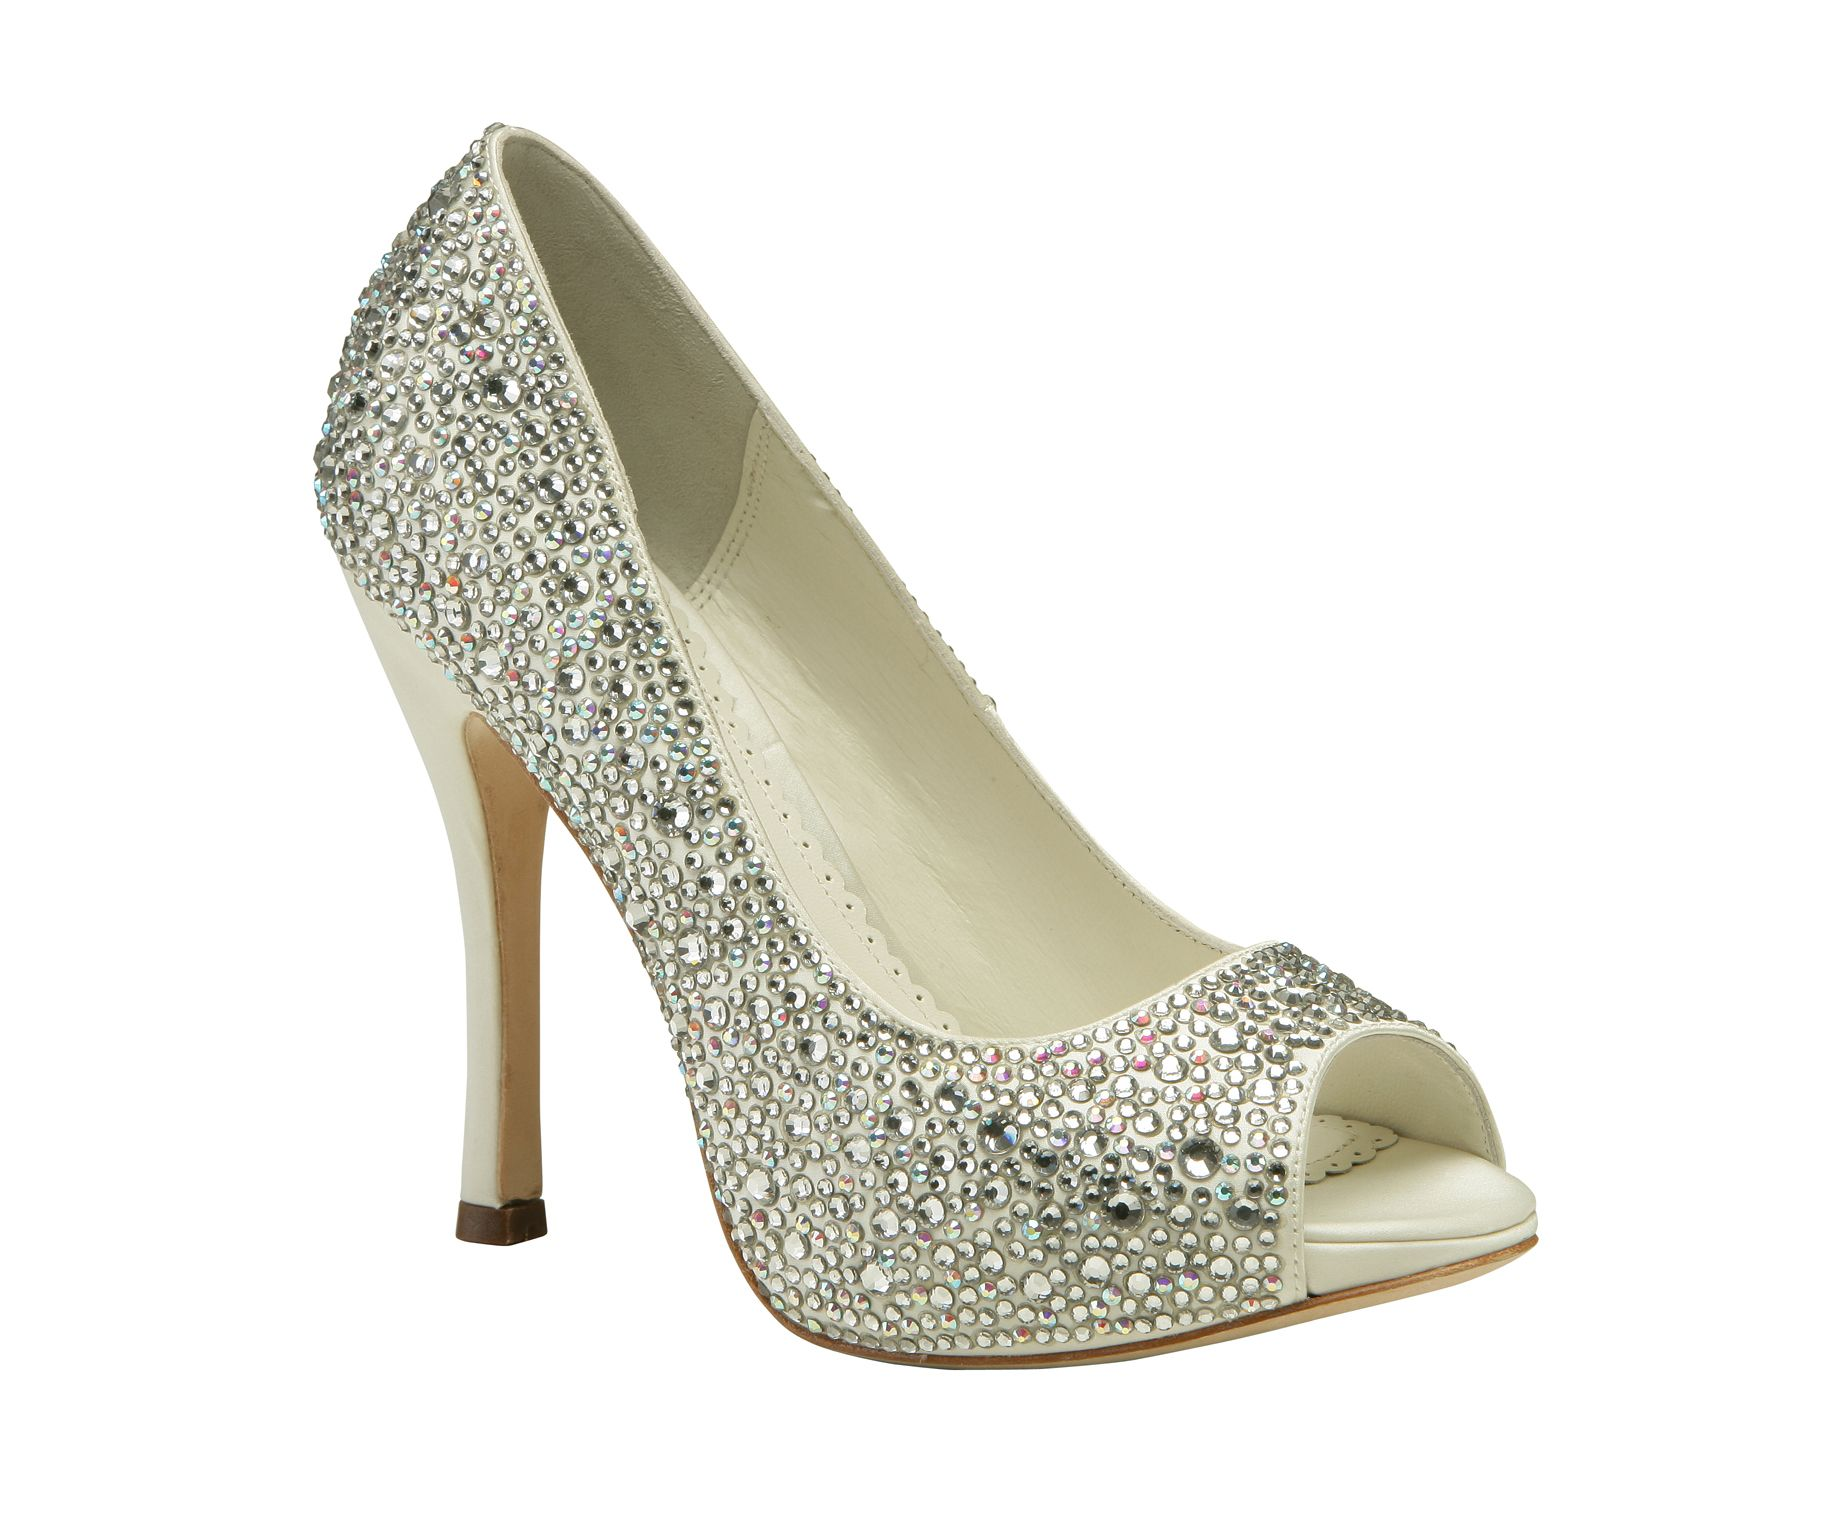 0ae443afc7b6 Gorgeous Swarovski crystal encrusted court shoe by Benjamin Adams available  at Pink Confetti